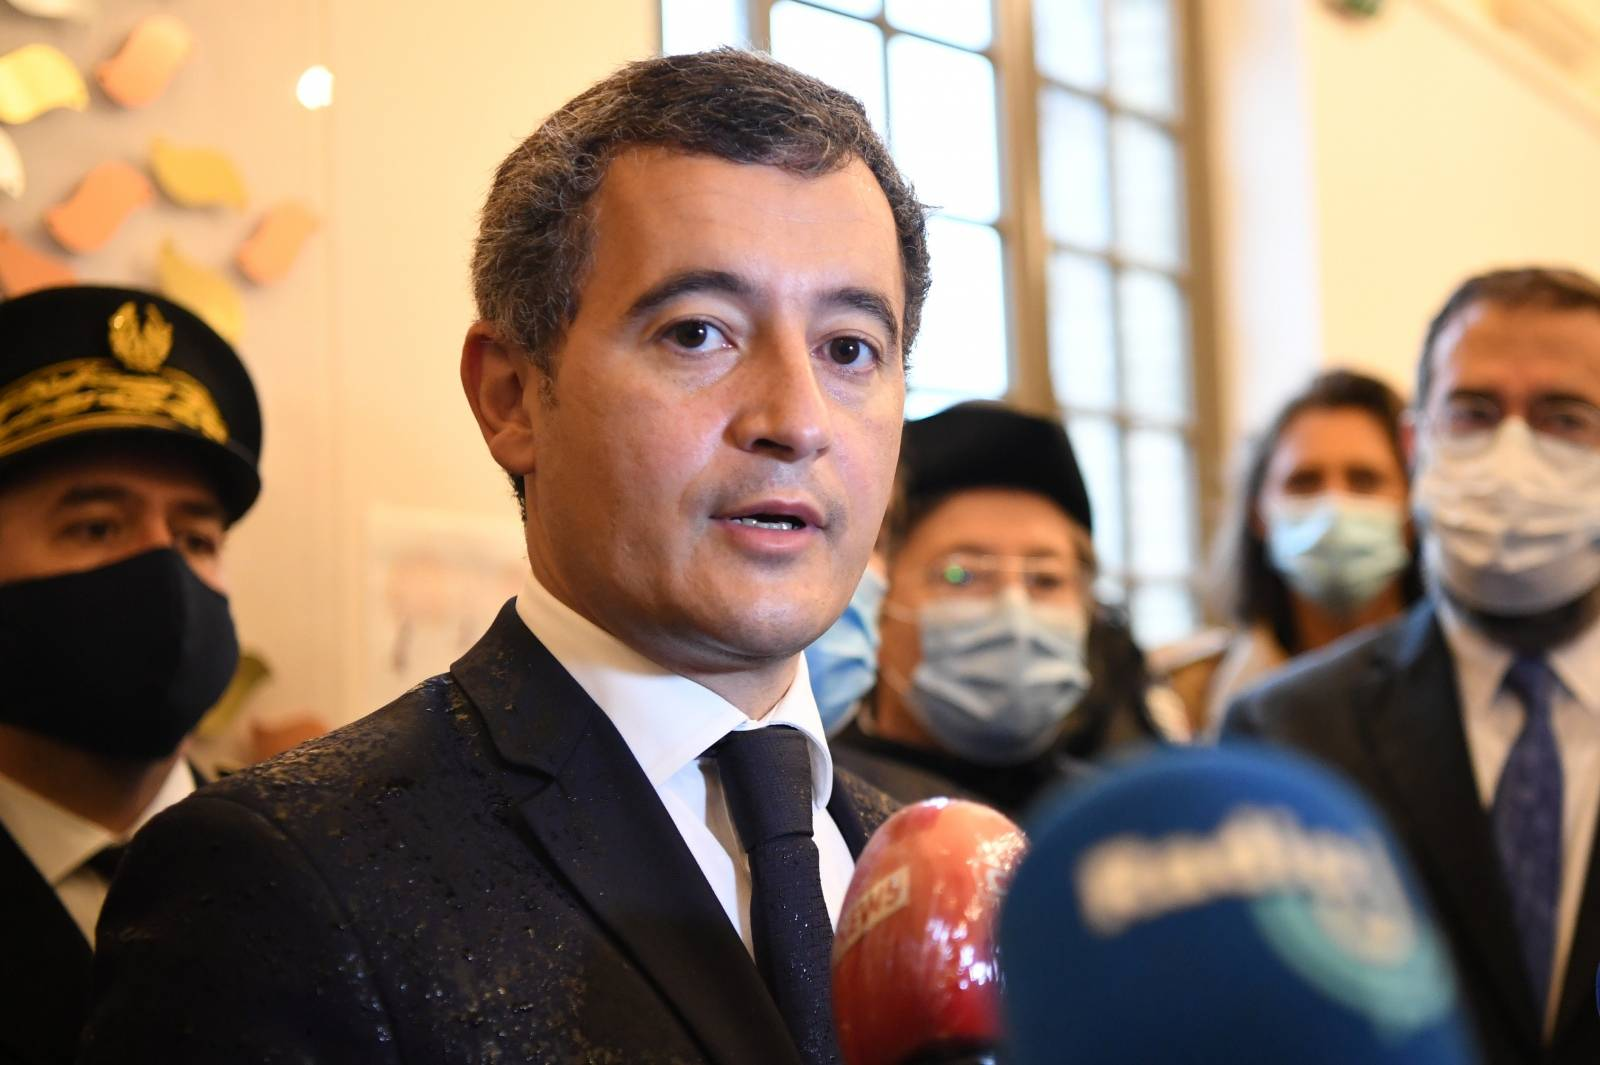 French Interior Minister Gerald Darmanin visits the synagogue of Boulogne-Billancourt